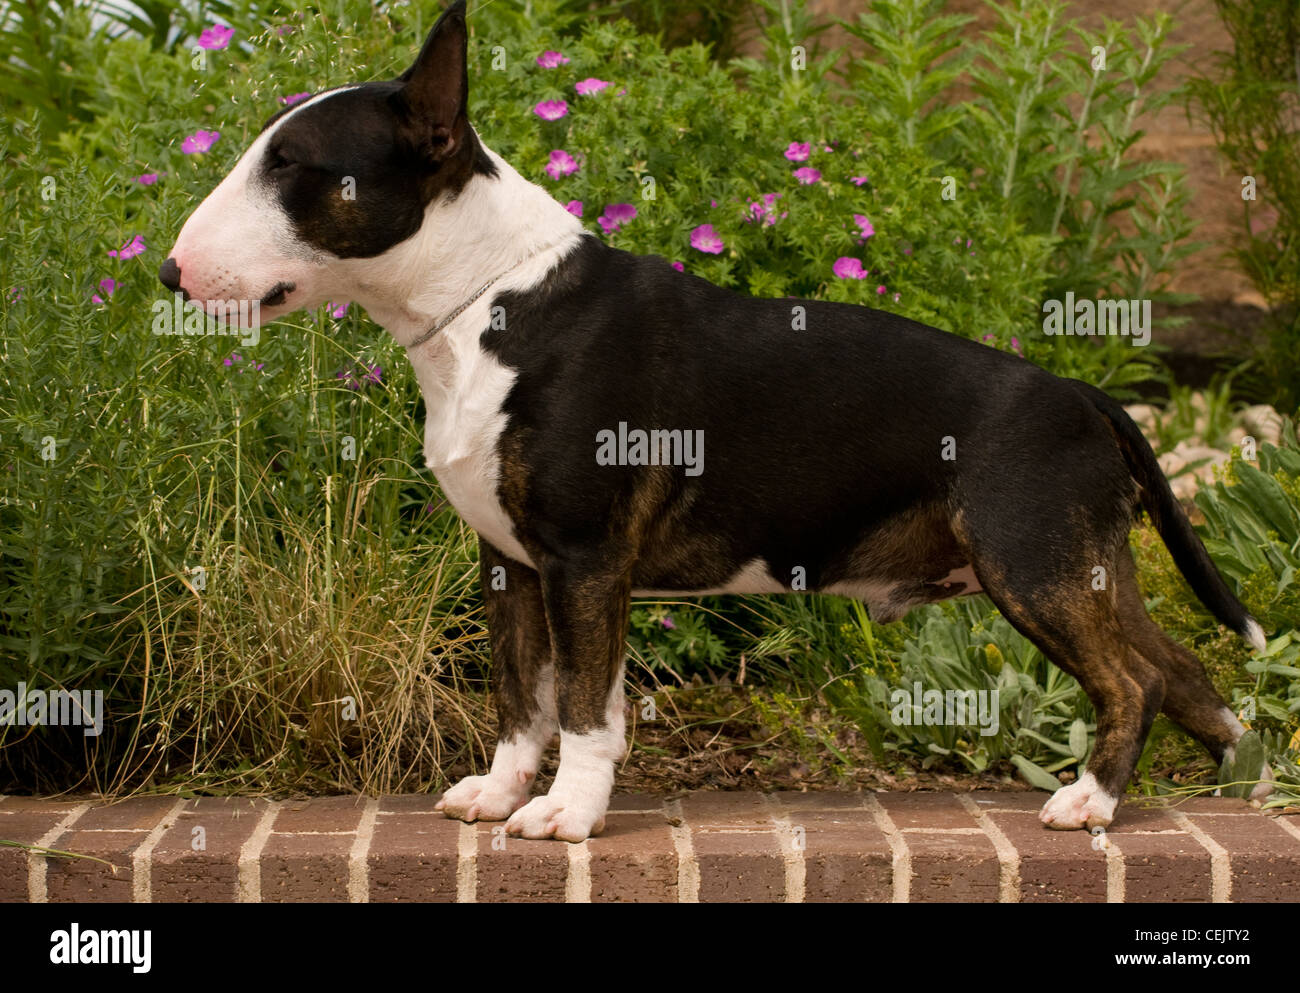 Miniature bull terrier on brick wall with flowers behind - Stock Image